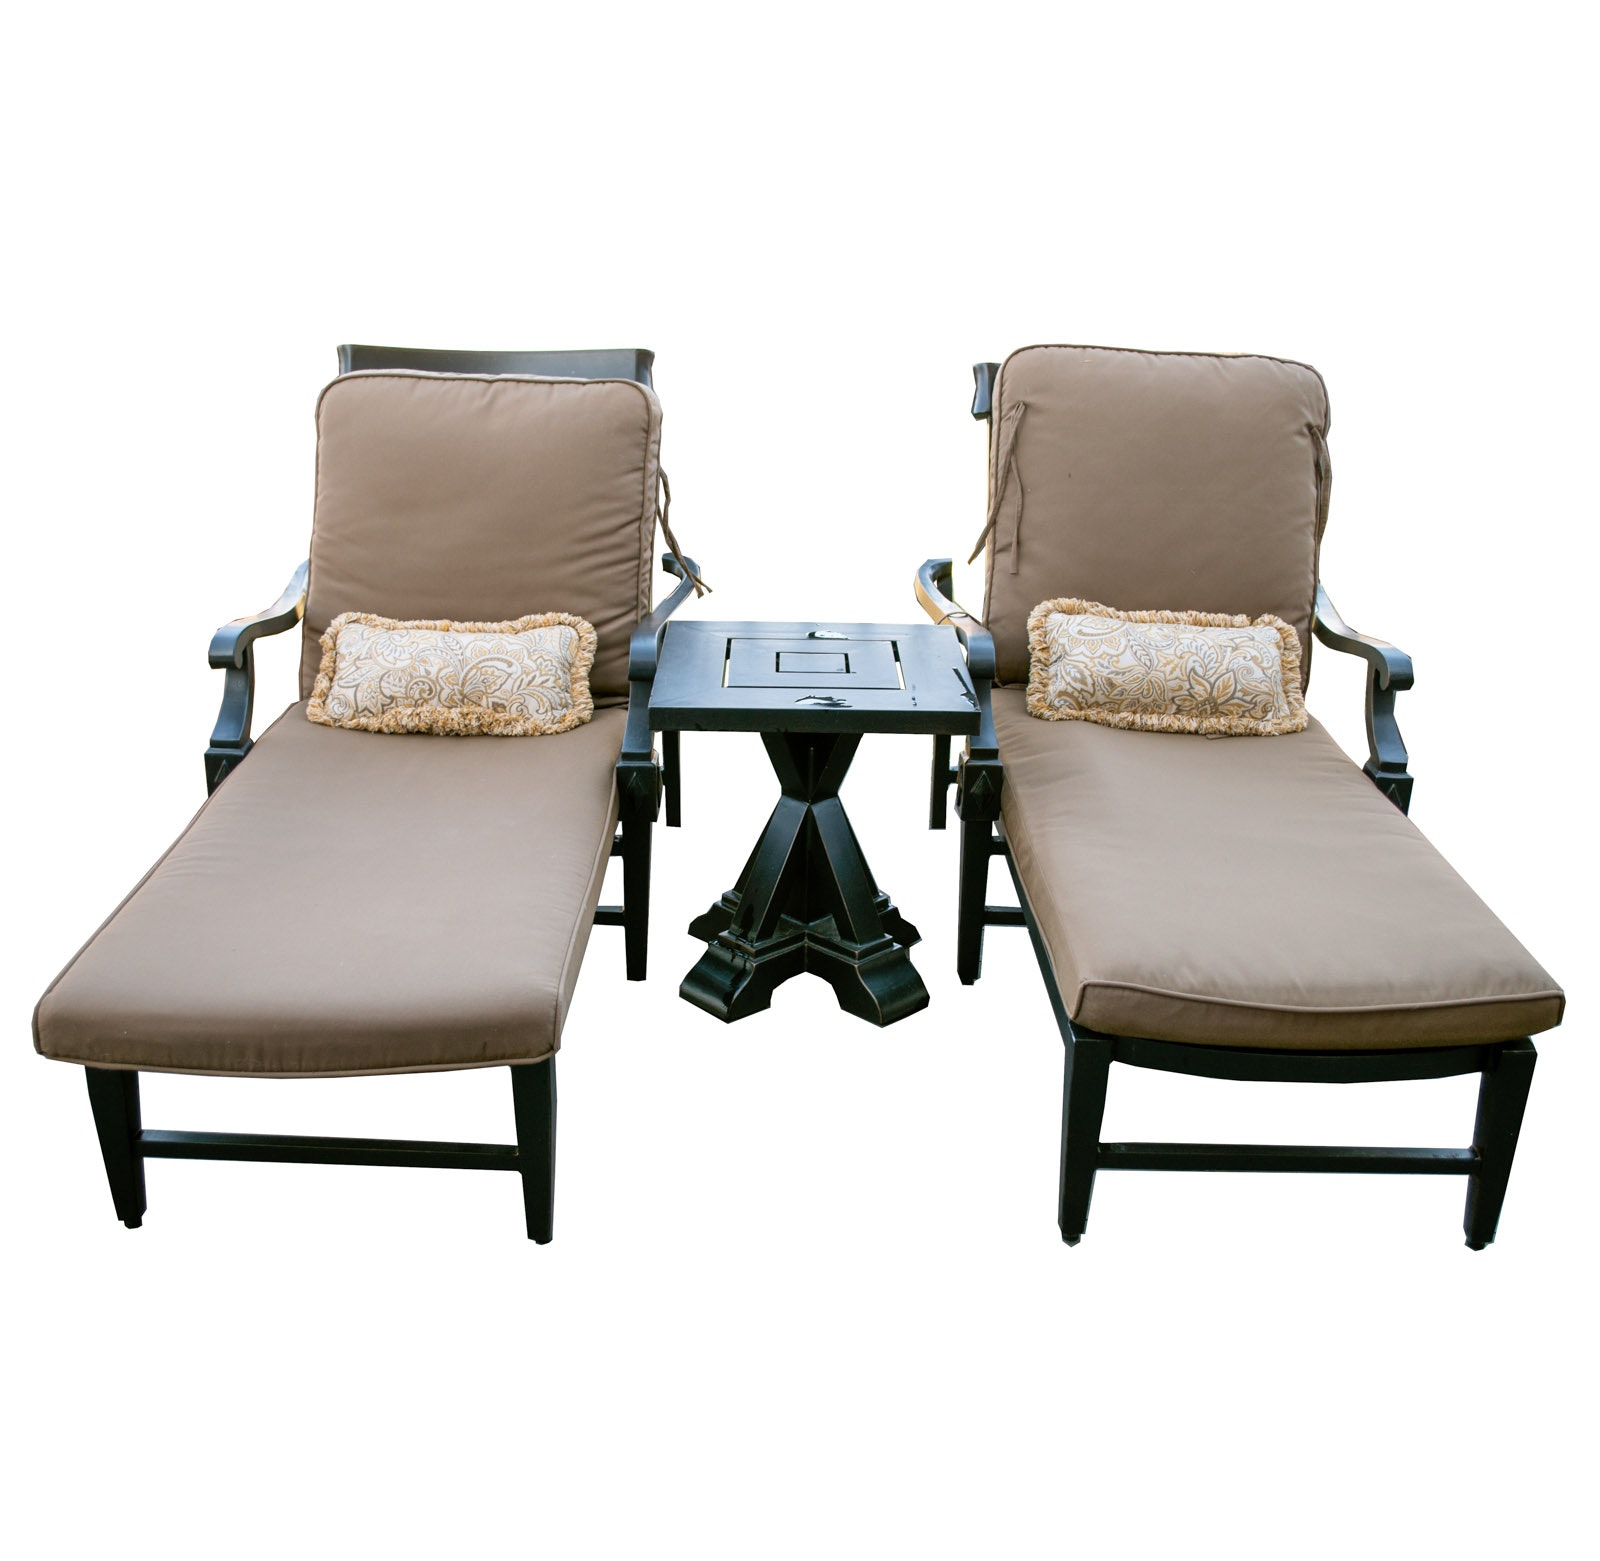 pair of costco broadway lounge patio chairs and side table ebth rh ebth com